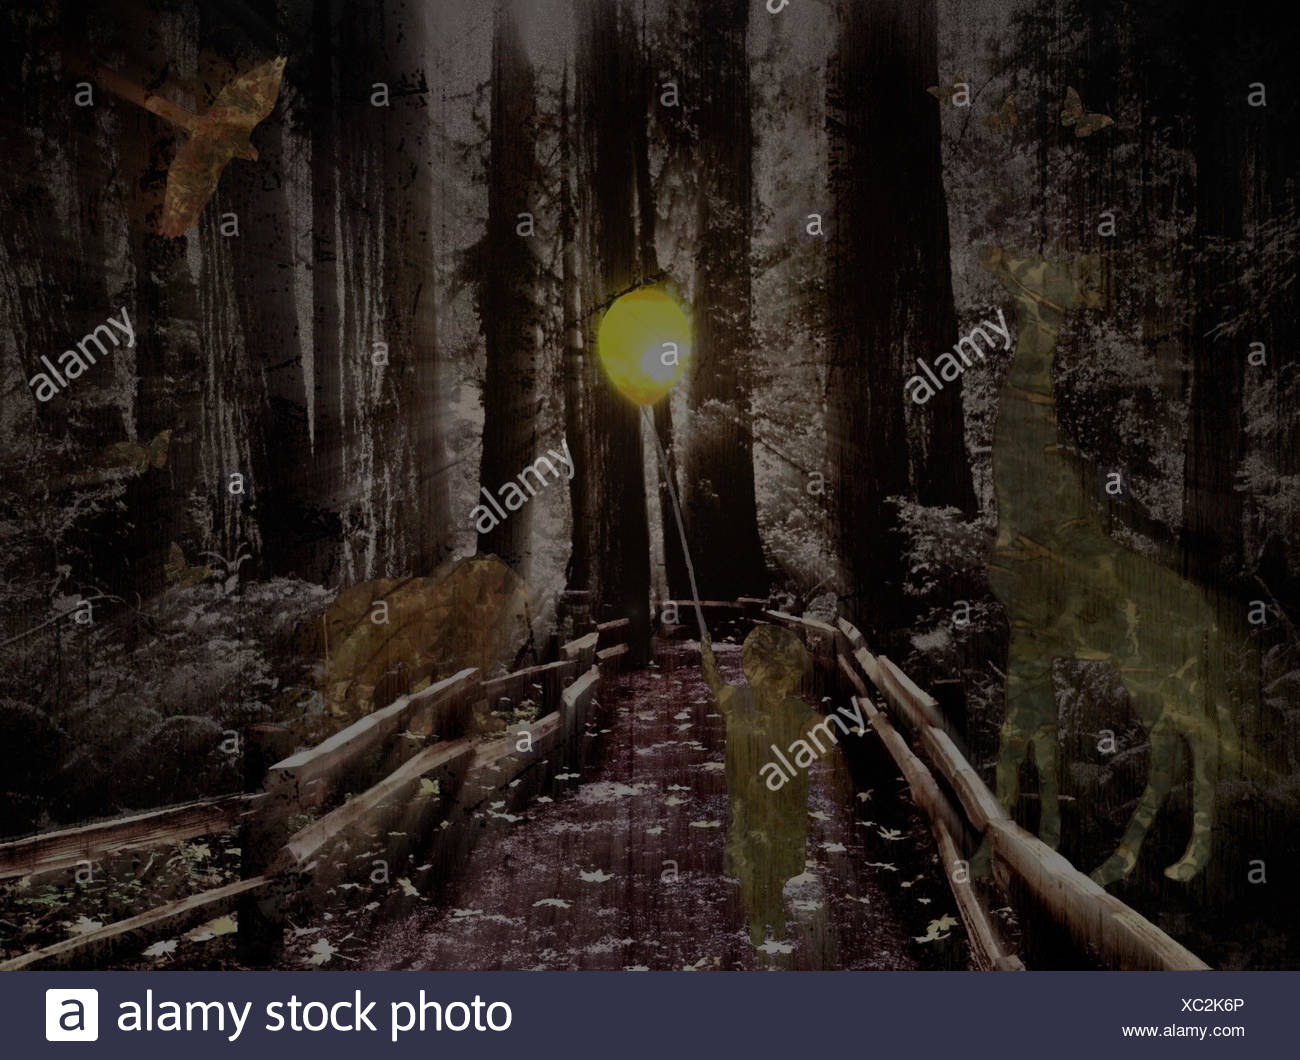 USA, California, San Francisco, Abstract of boy (4-5) walking on path in forest - Stock Image